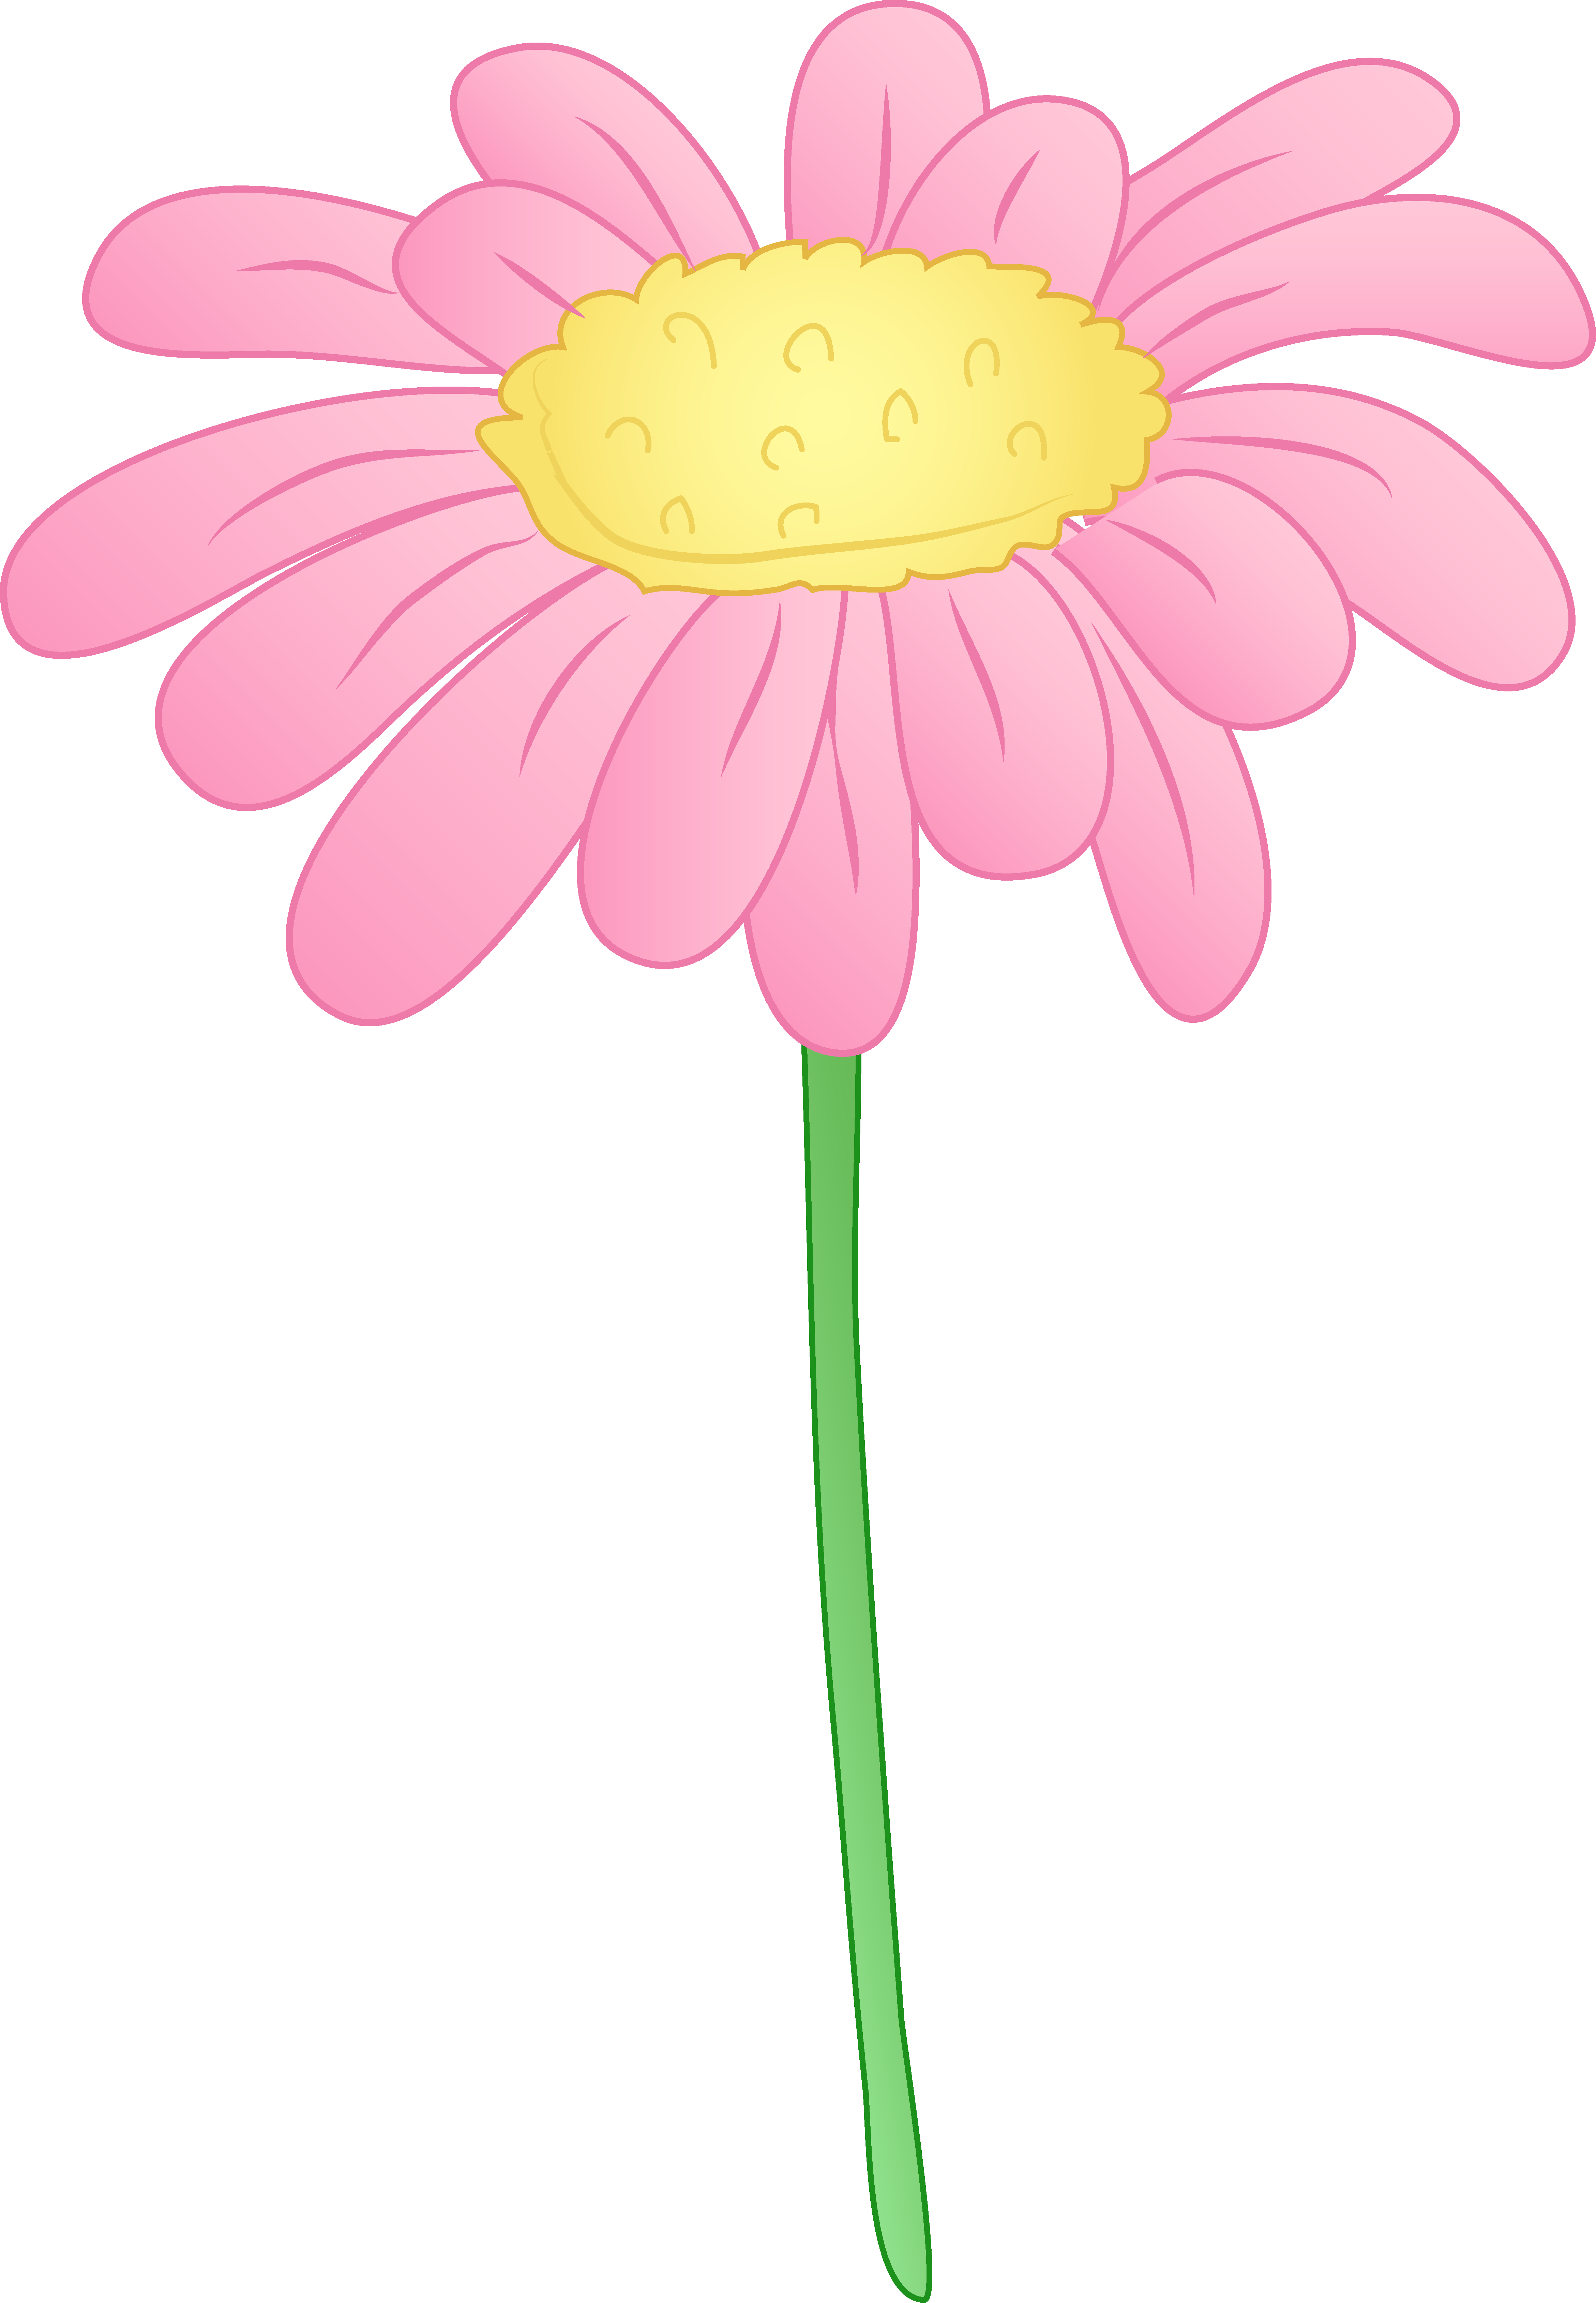 Pink daisy cliparts black and white Pretty pink daisy flower free clip art clipartandscrap ... black and white